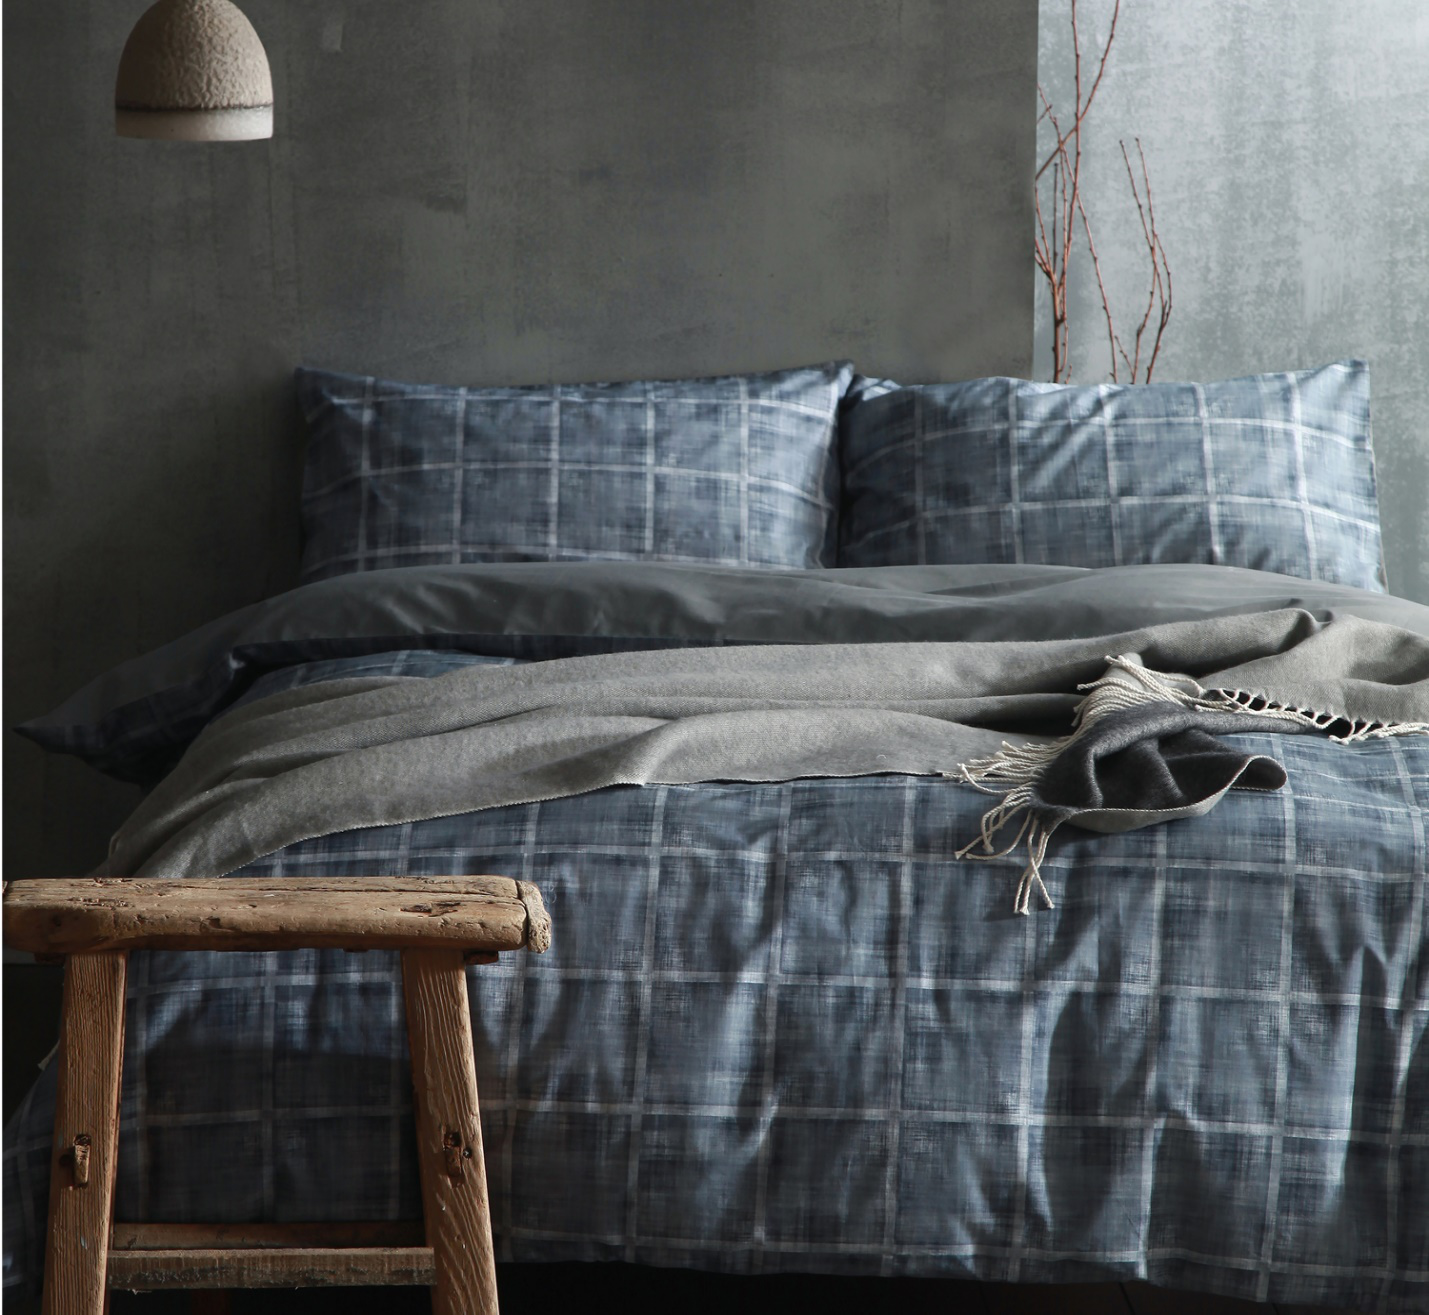 HOW TO JUDGE HOTEL BEDDING QUALITY